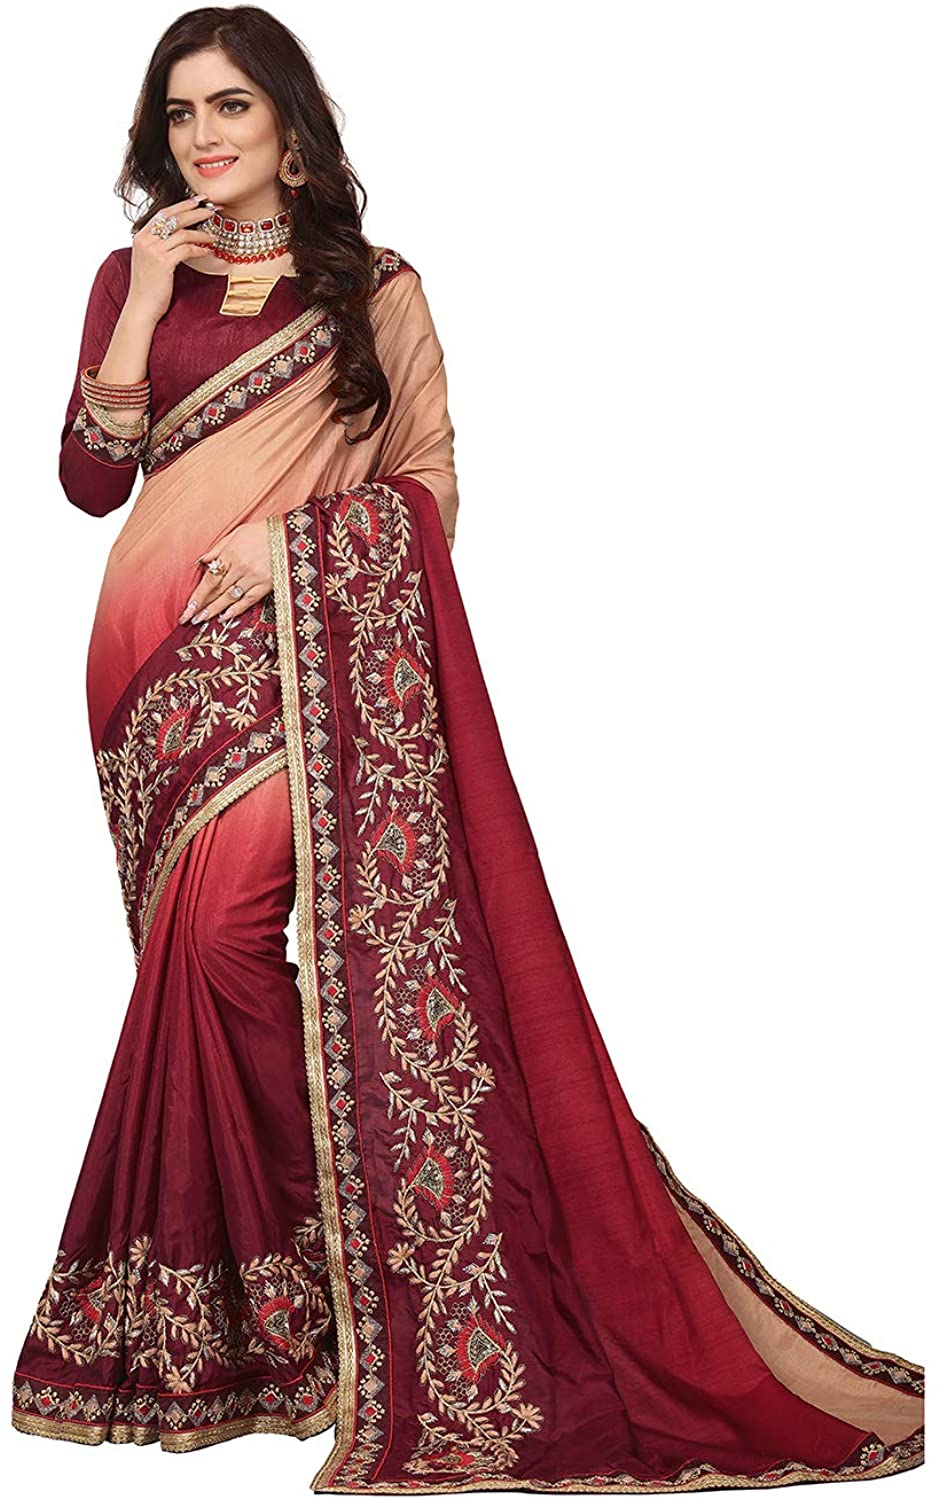 Saree for Women Bollywood Wedding Designer Dola Silk Sari with Unstitched Blouse.